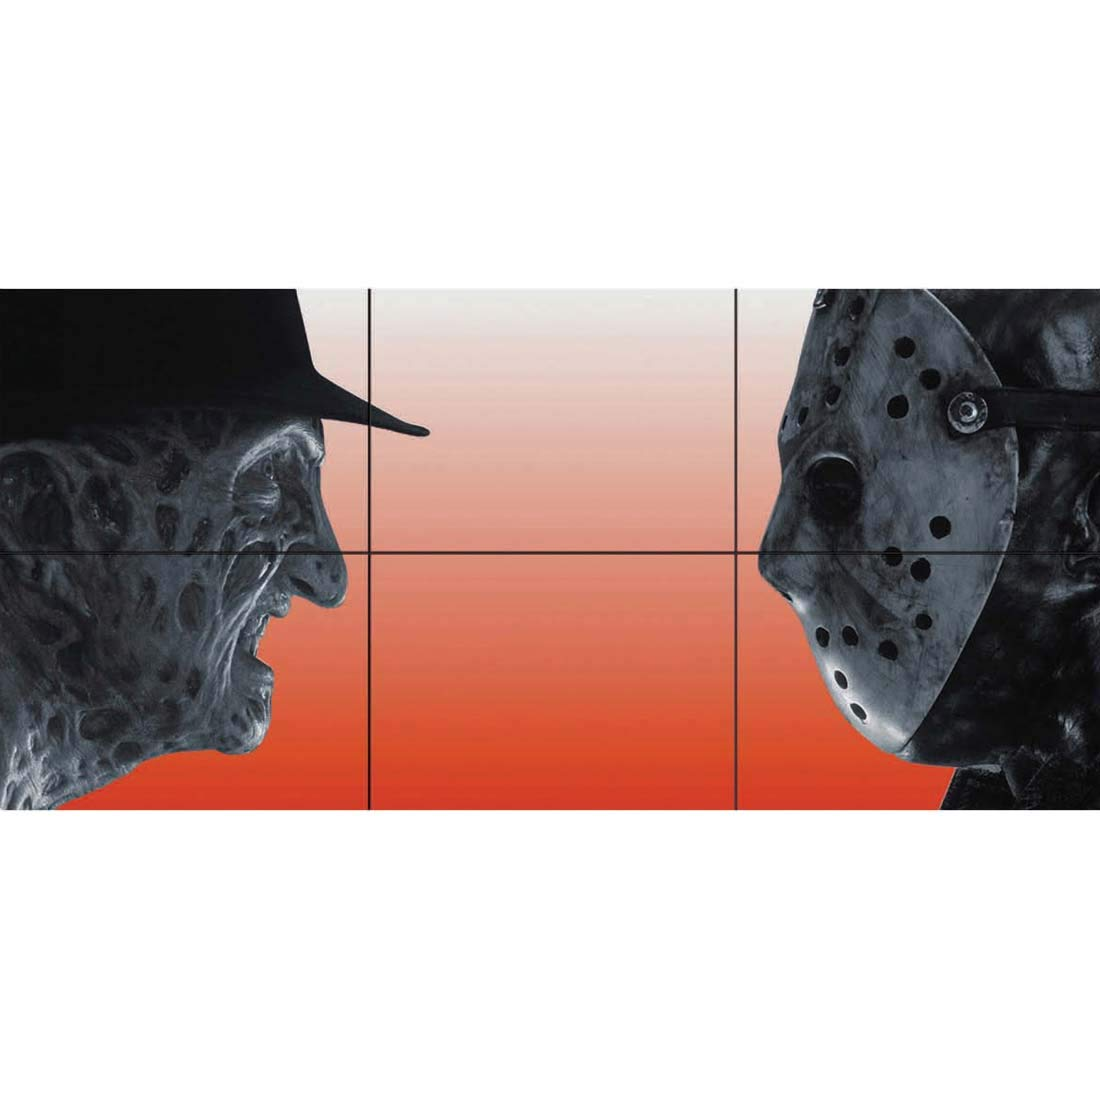 Doppelganger33LTD Freddy Krueger VS Jason Voorhees Horror Movie Film Characters Giant Picture Art Poster Print B313